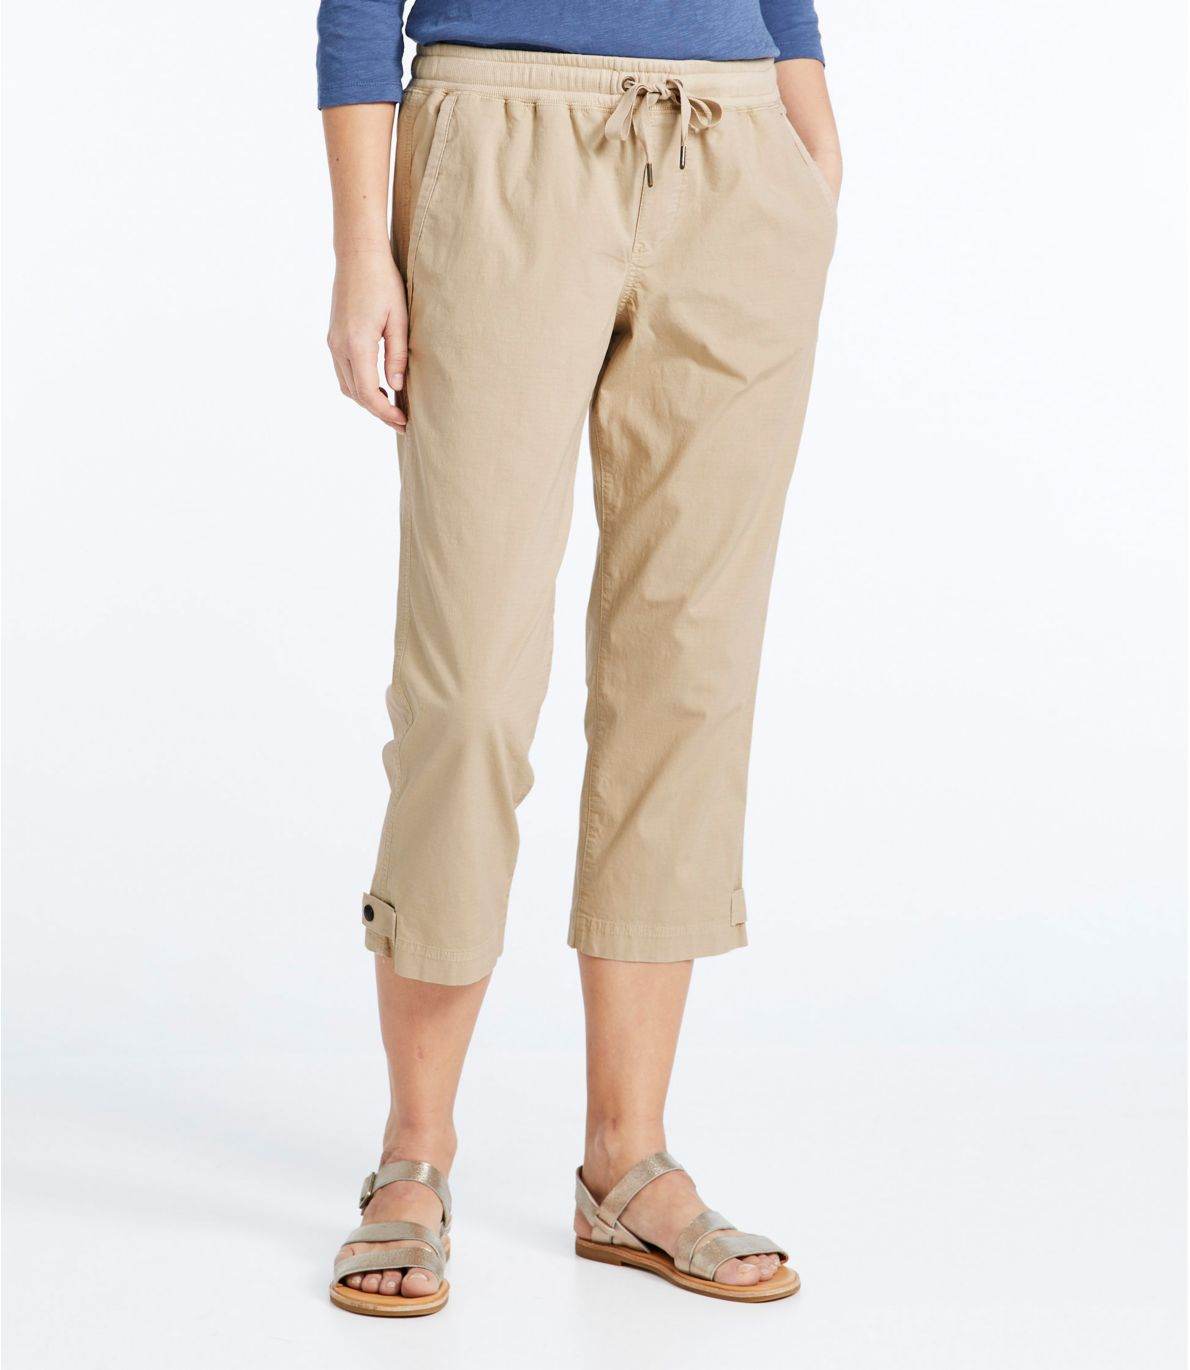 Women's Stretch Ripstop Pull-On Capri Pants